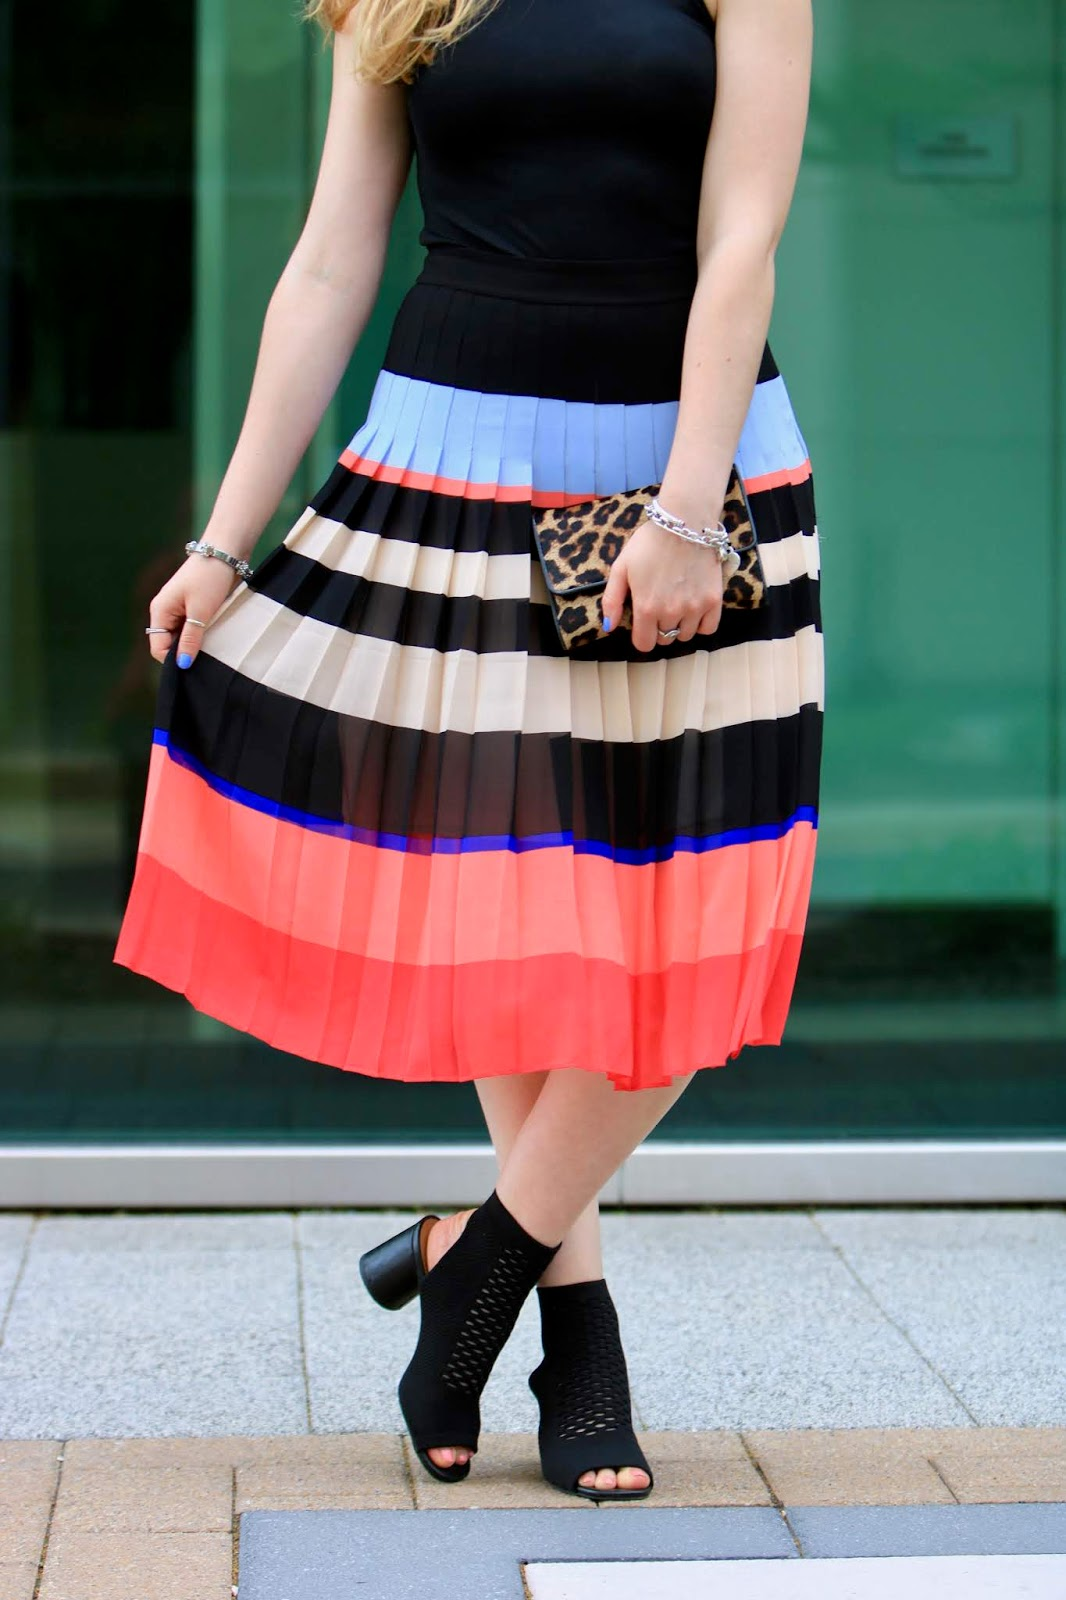 Nyc fashion blogger Kathleen Harper wearing a colorful striped midi skirt